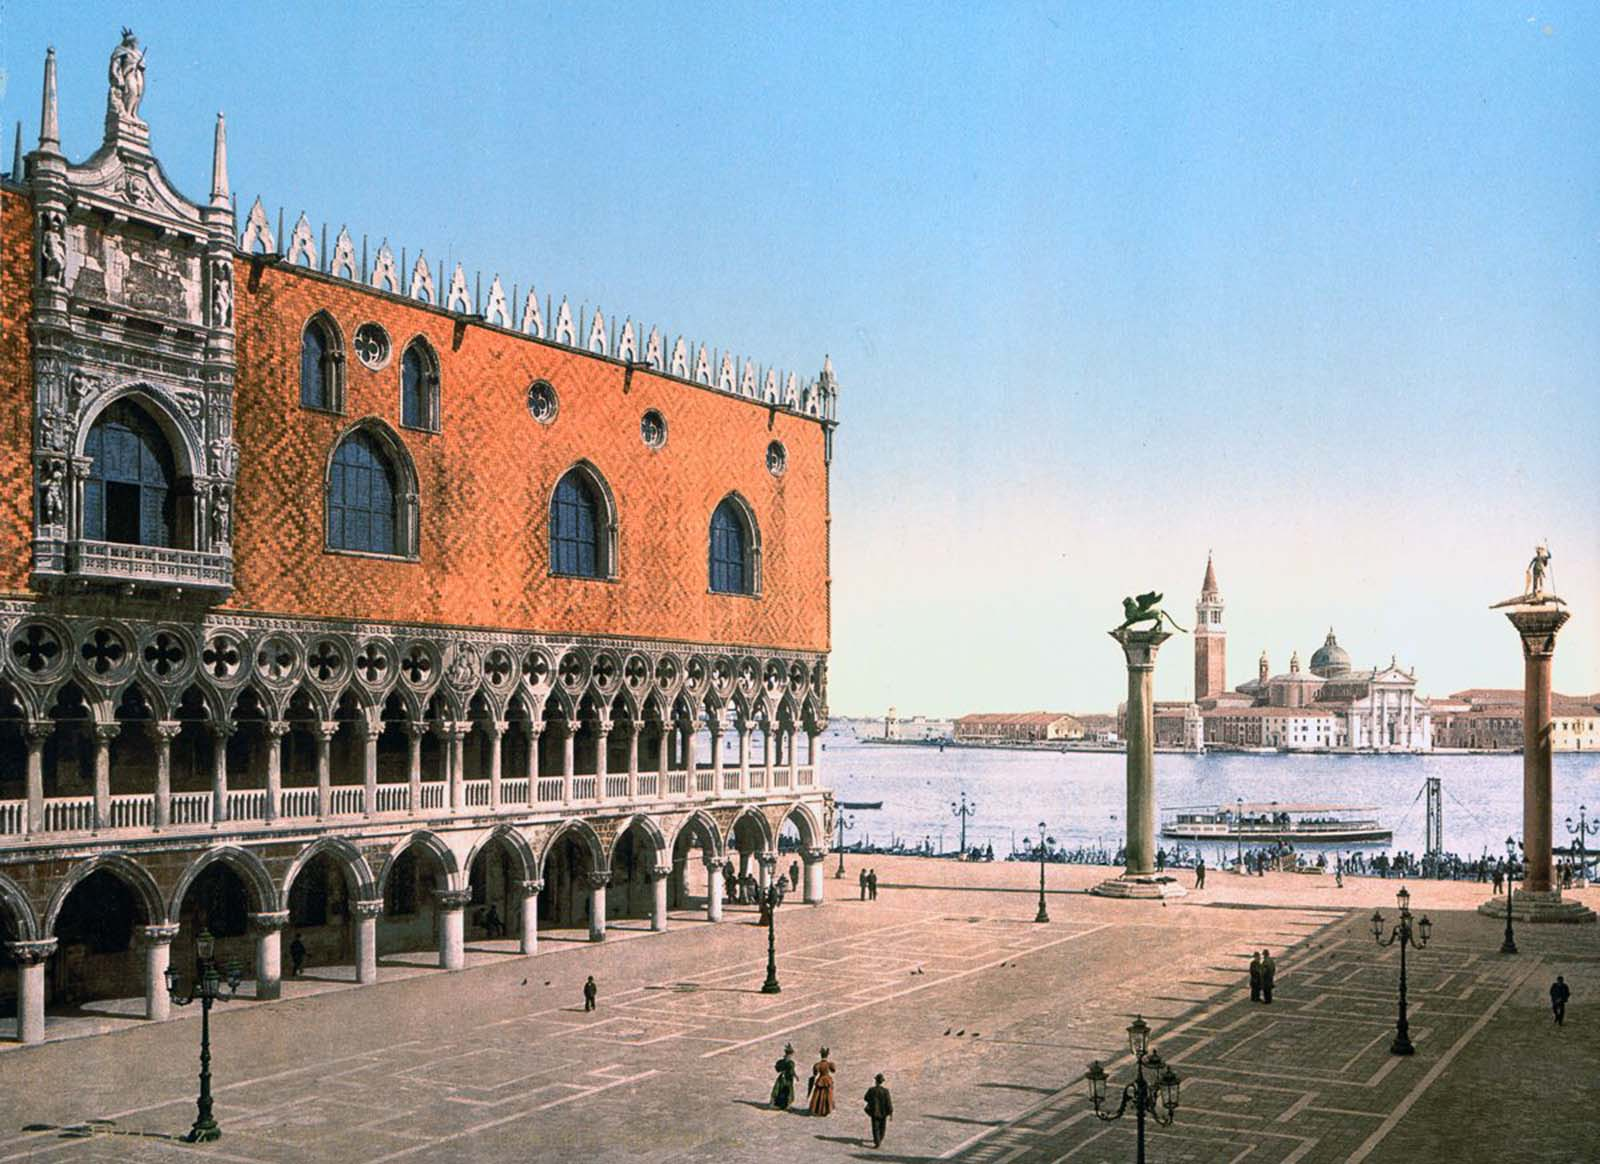 Doges' Palace and the Piazzetta.